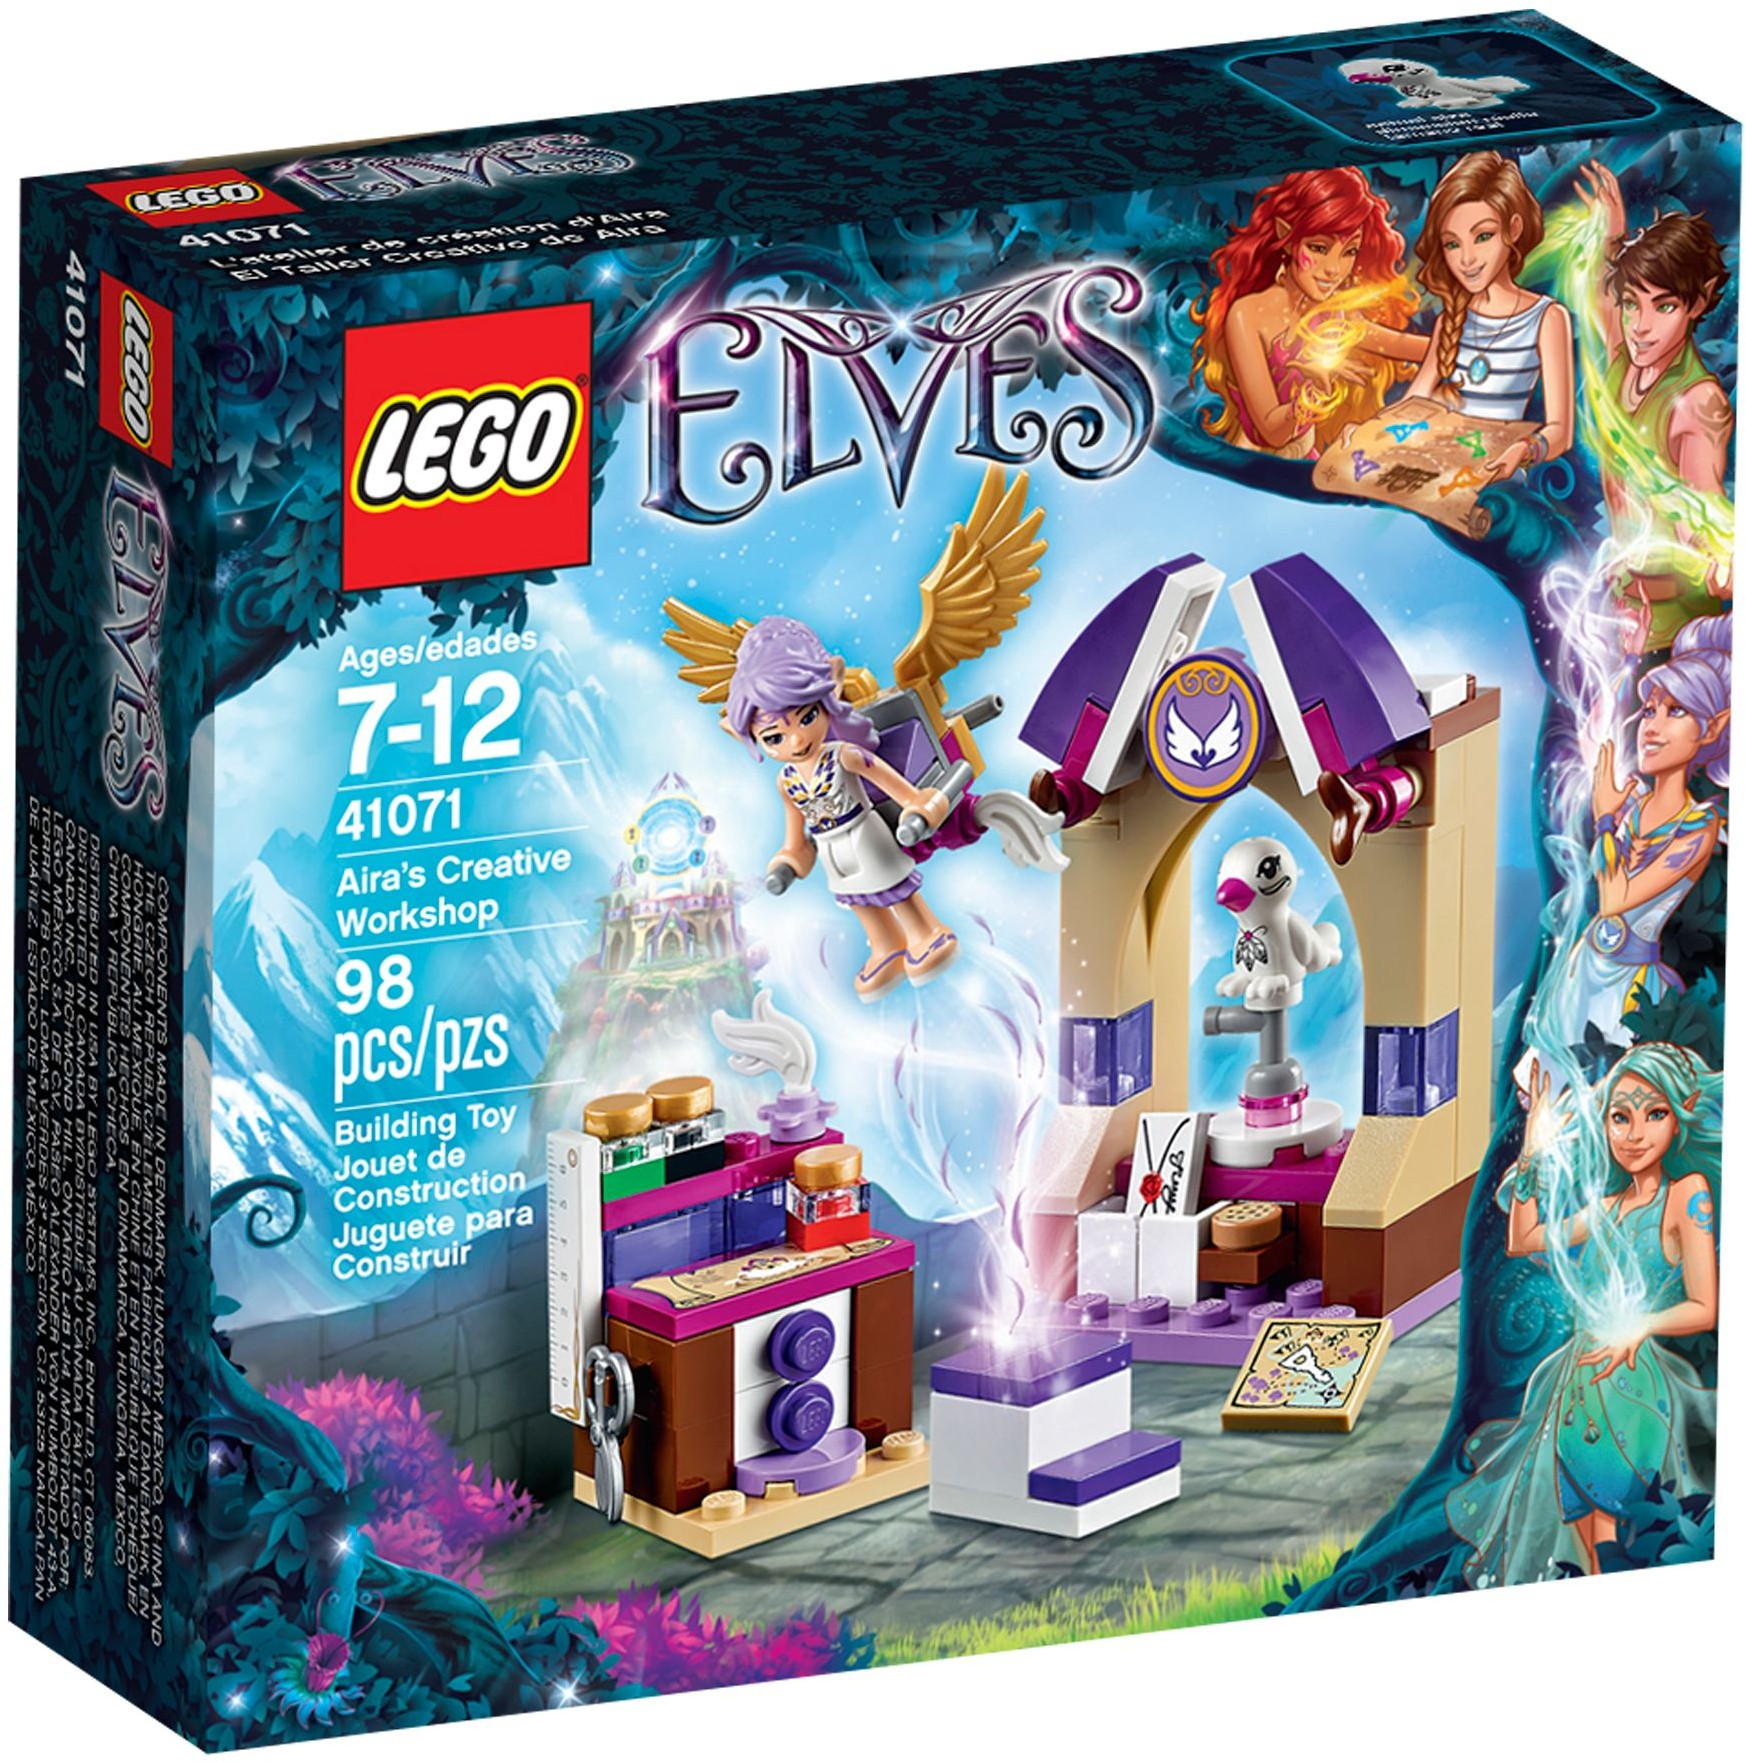 LEGO 41071 - Elves - Aira's Creative Workshop